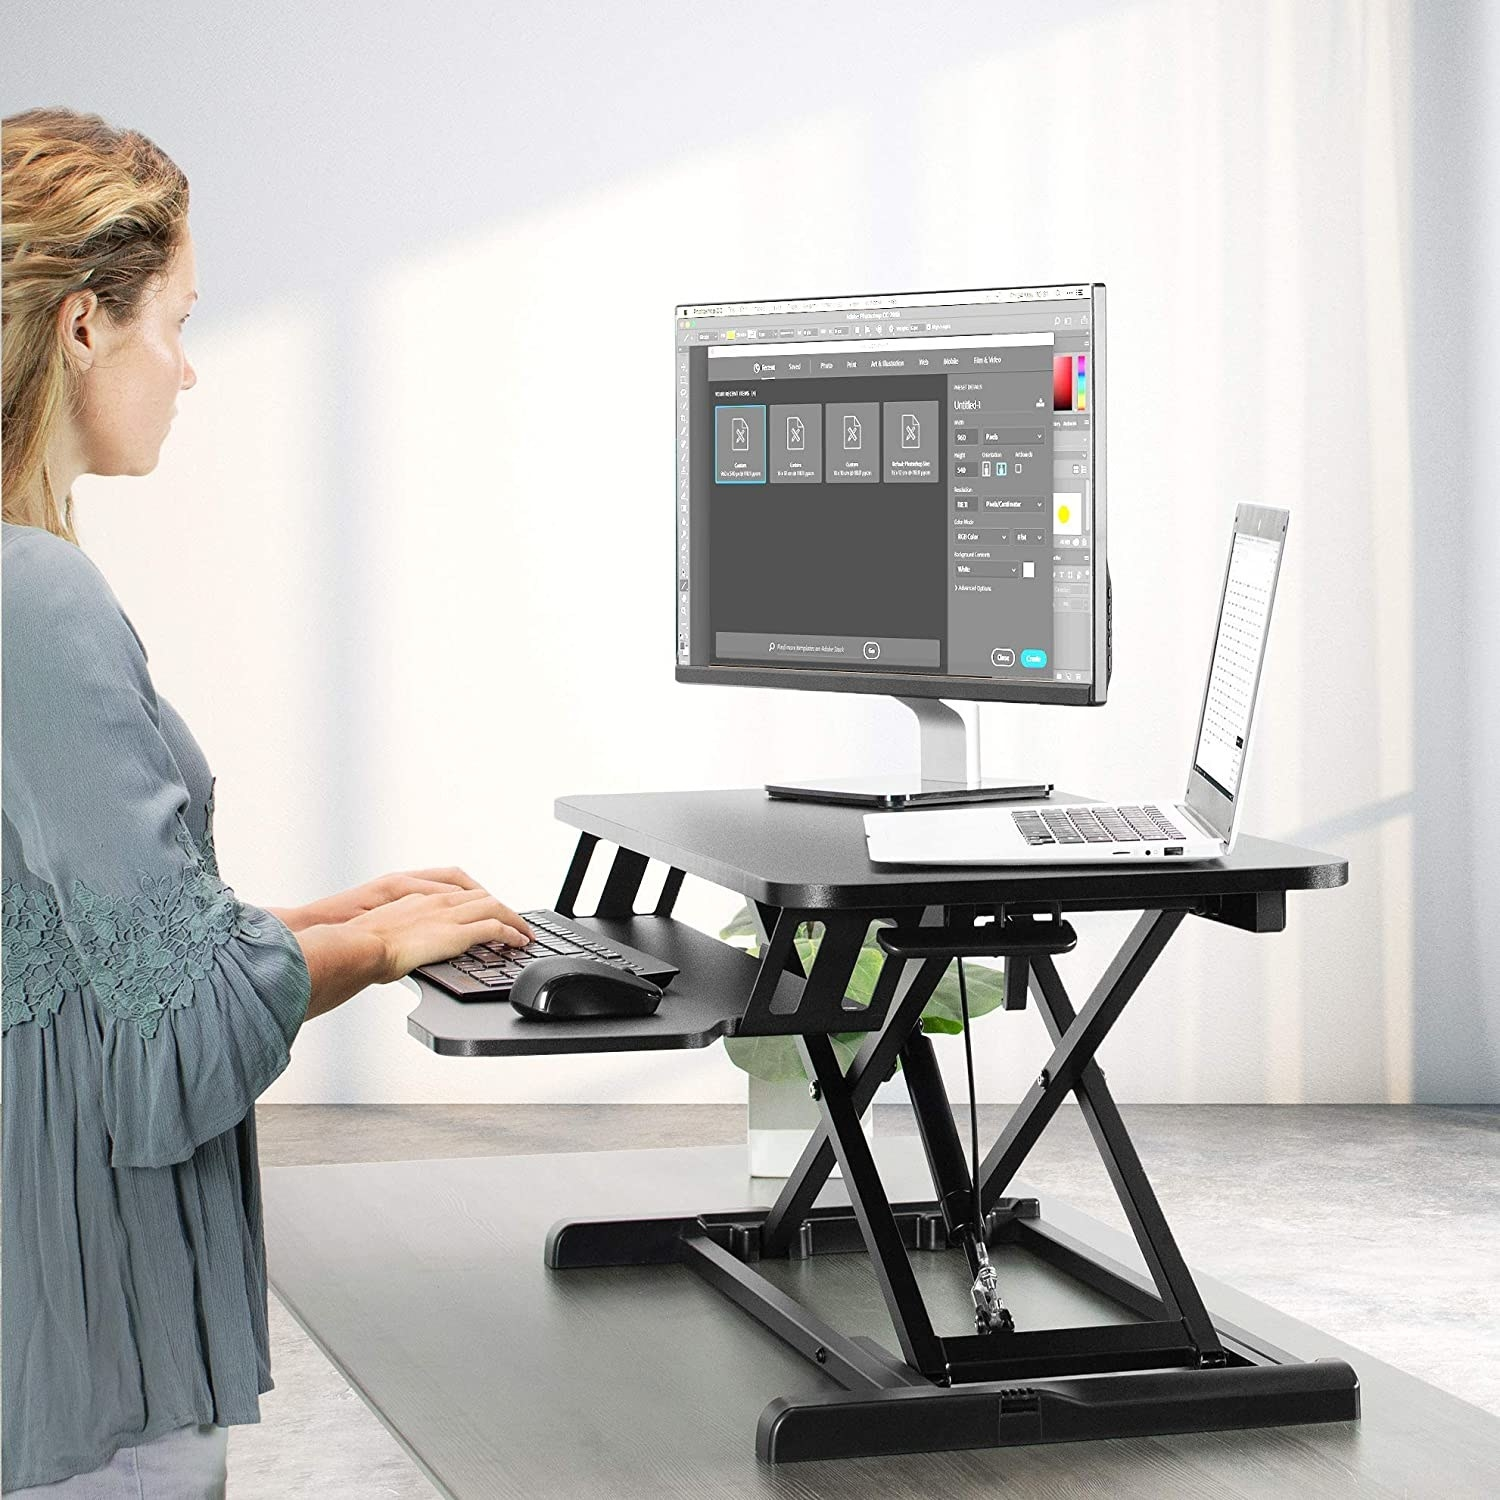 A person standing to use their computer which is placed on top of the standing desk attachment